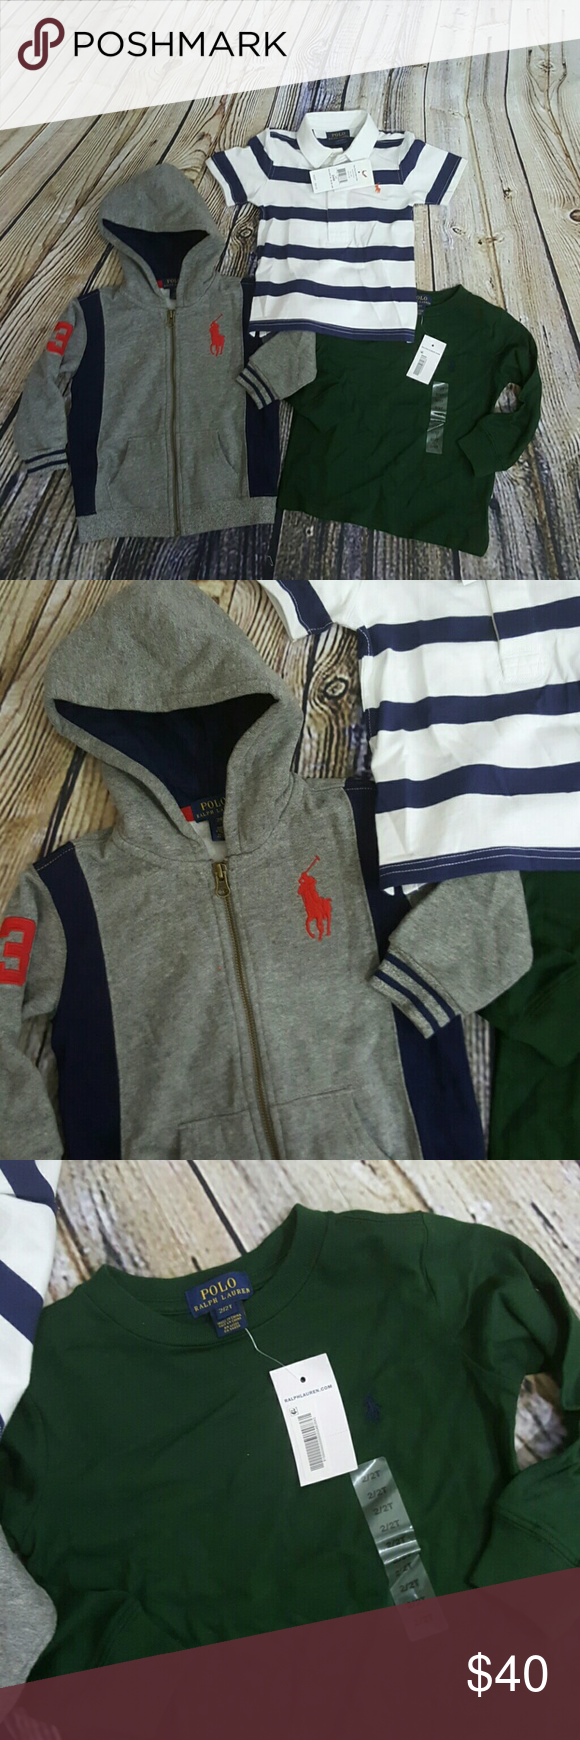 Ralph Lauren Bundle 2t 24 months Ralph Lauren bundle Hoodie size 24 months washed and Worn one time Green long sleeve tee size 2t new with a tags The stripes polo shirt is also brand new size 24 months Ralph Lauren Shirts & Tops Tees - Long Sleeve